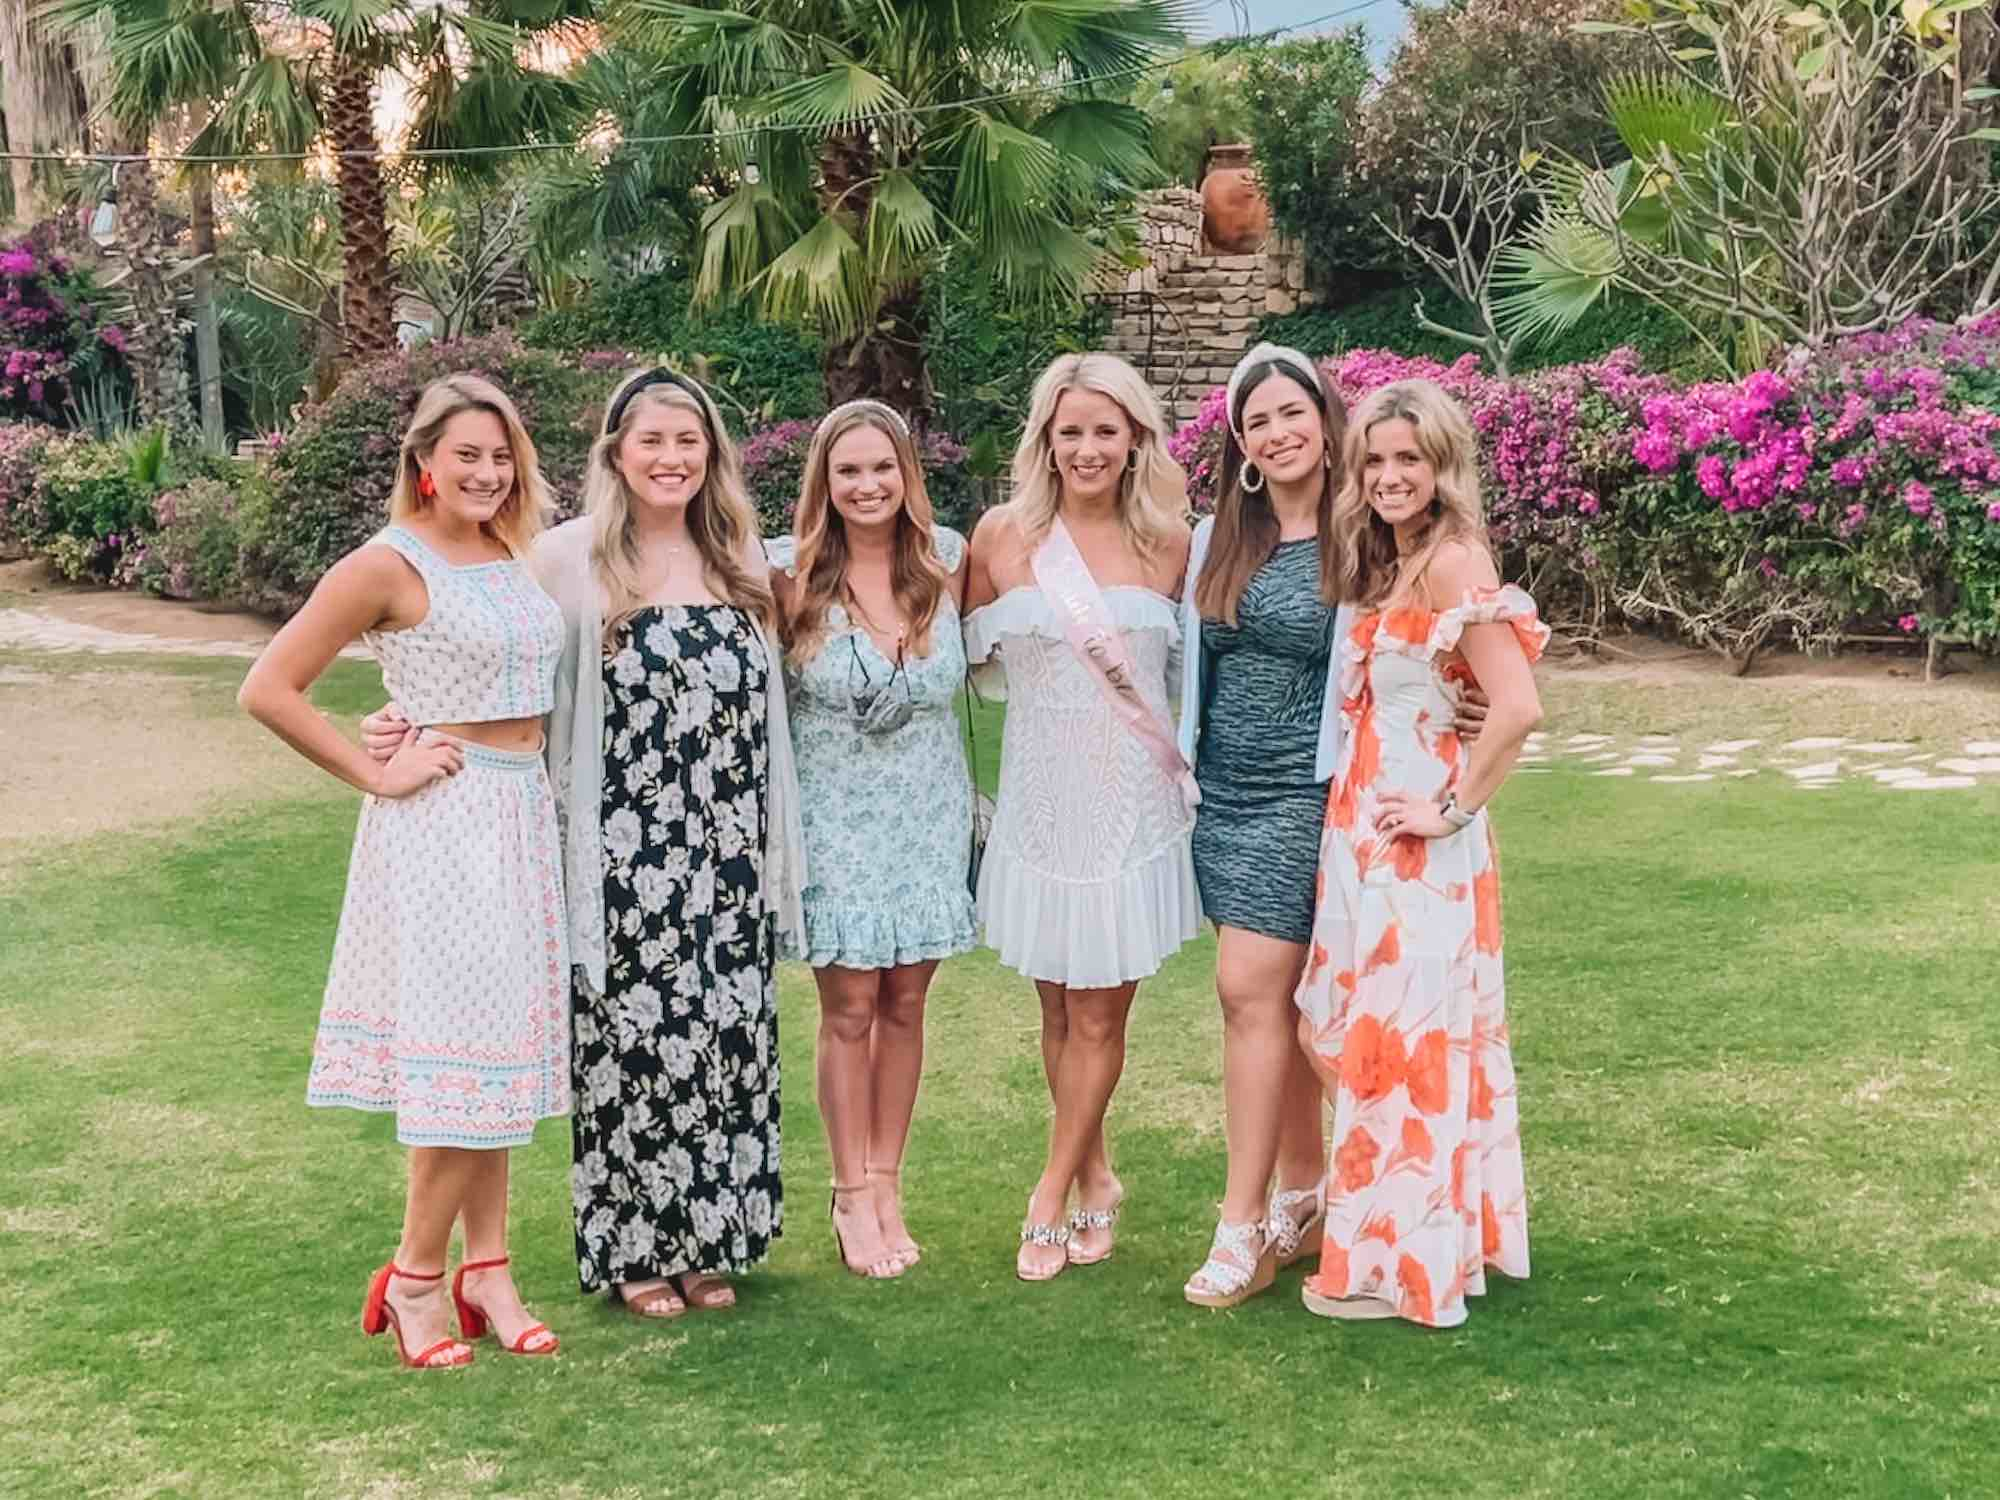 Courtney's Cabo San Lucas Bachelorette Party Itinerary